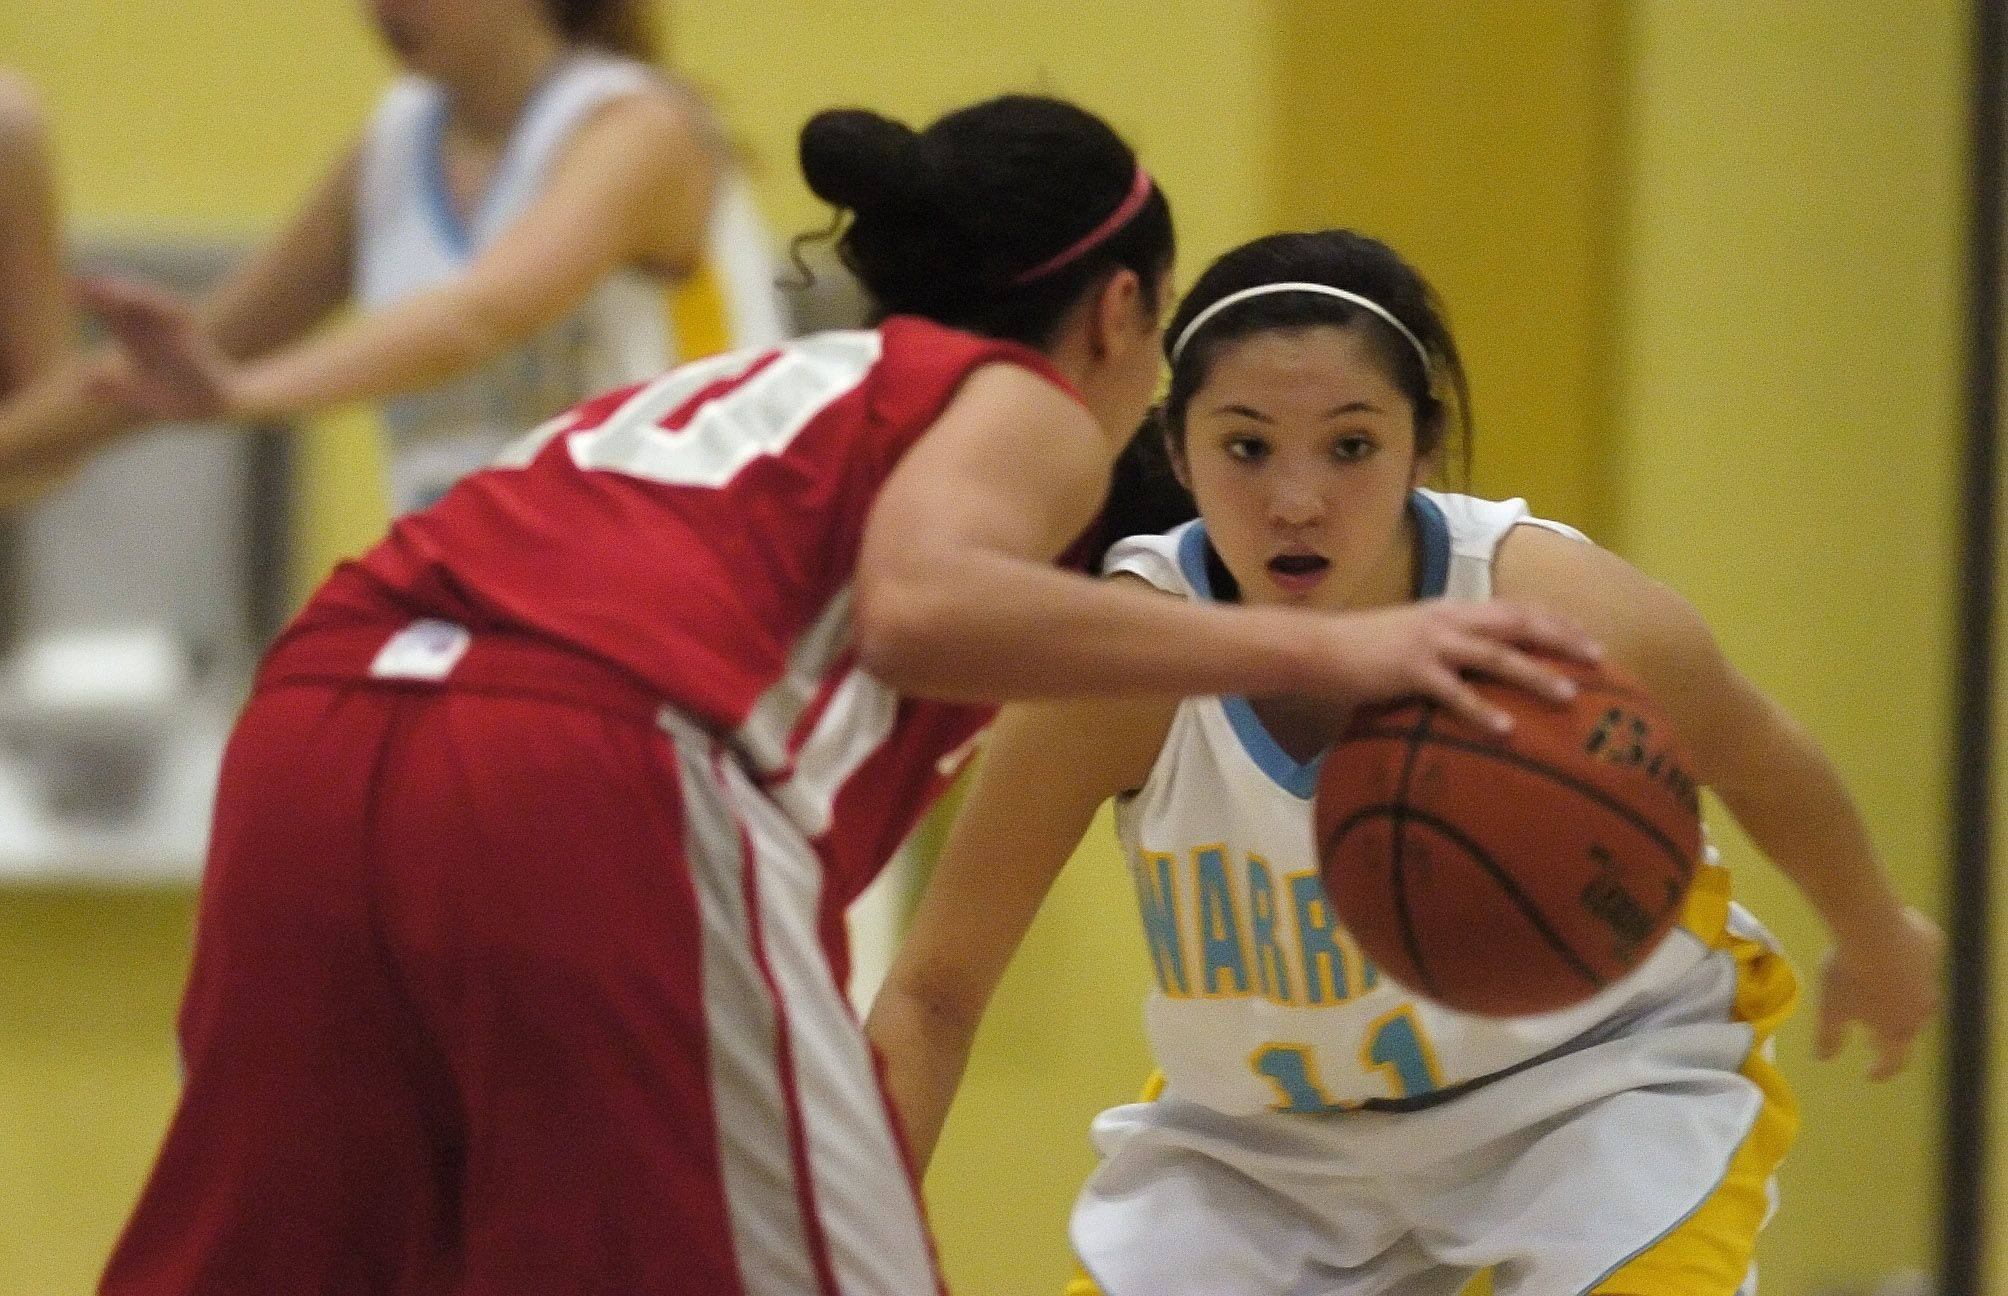 Nia Pappas of Palatine moves past Amanda Hoye of Maine West during girls varsity basketball action in Des Plaines